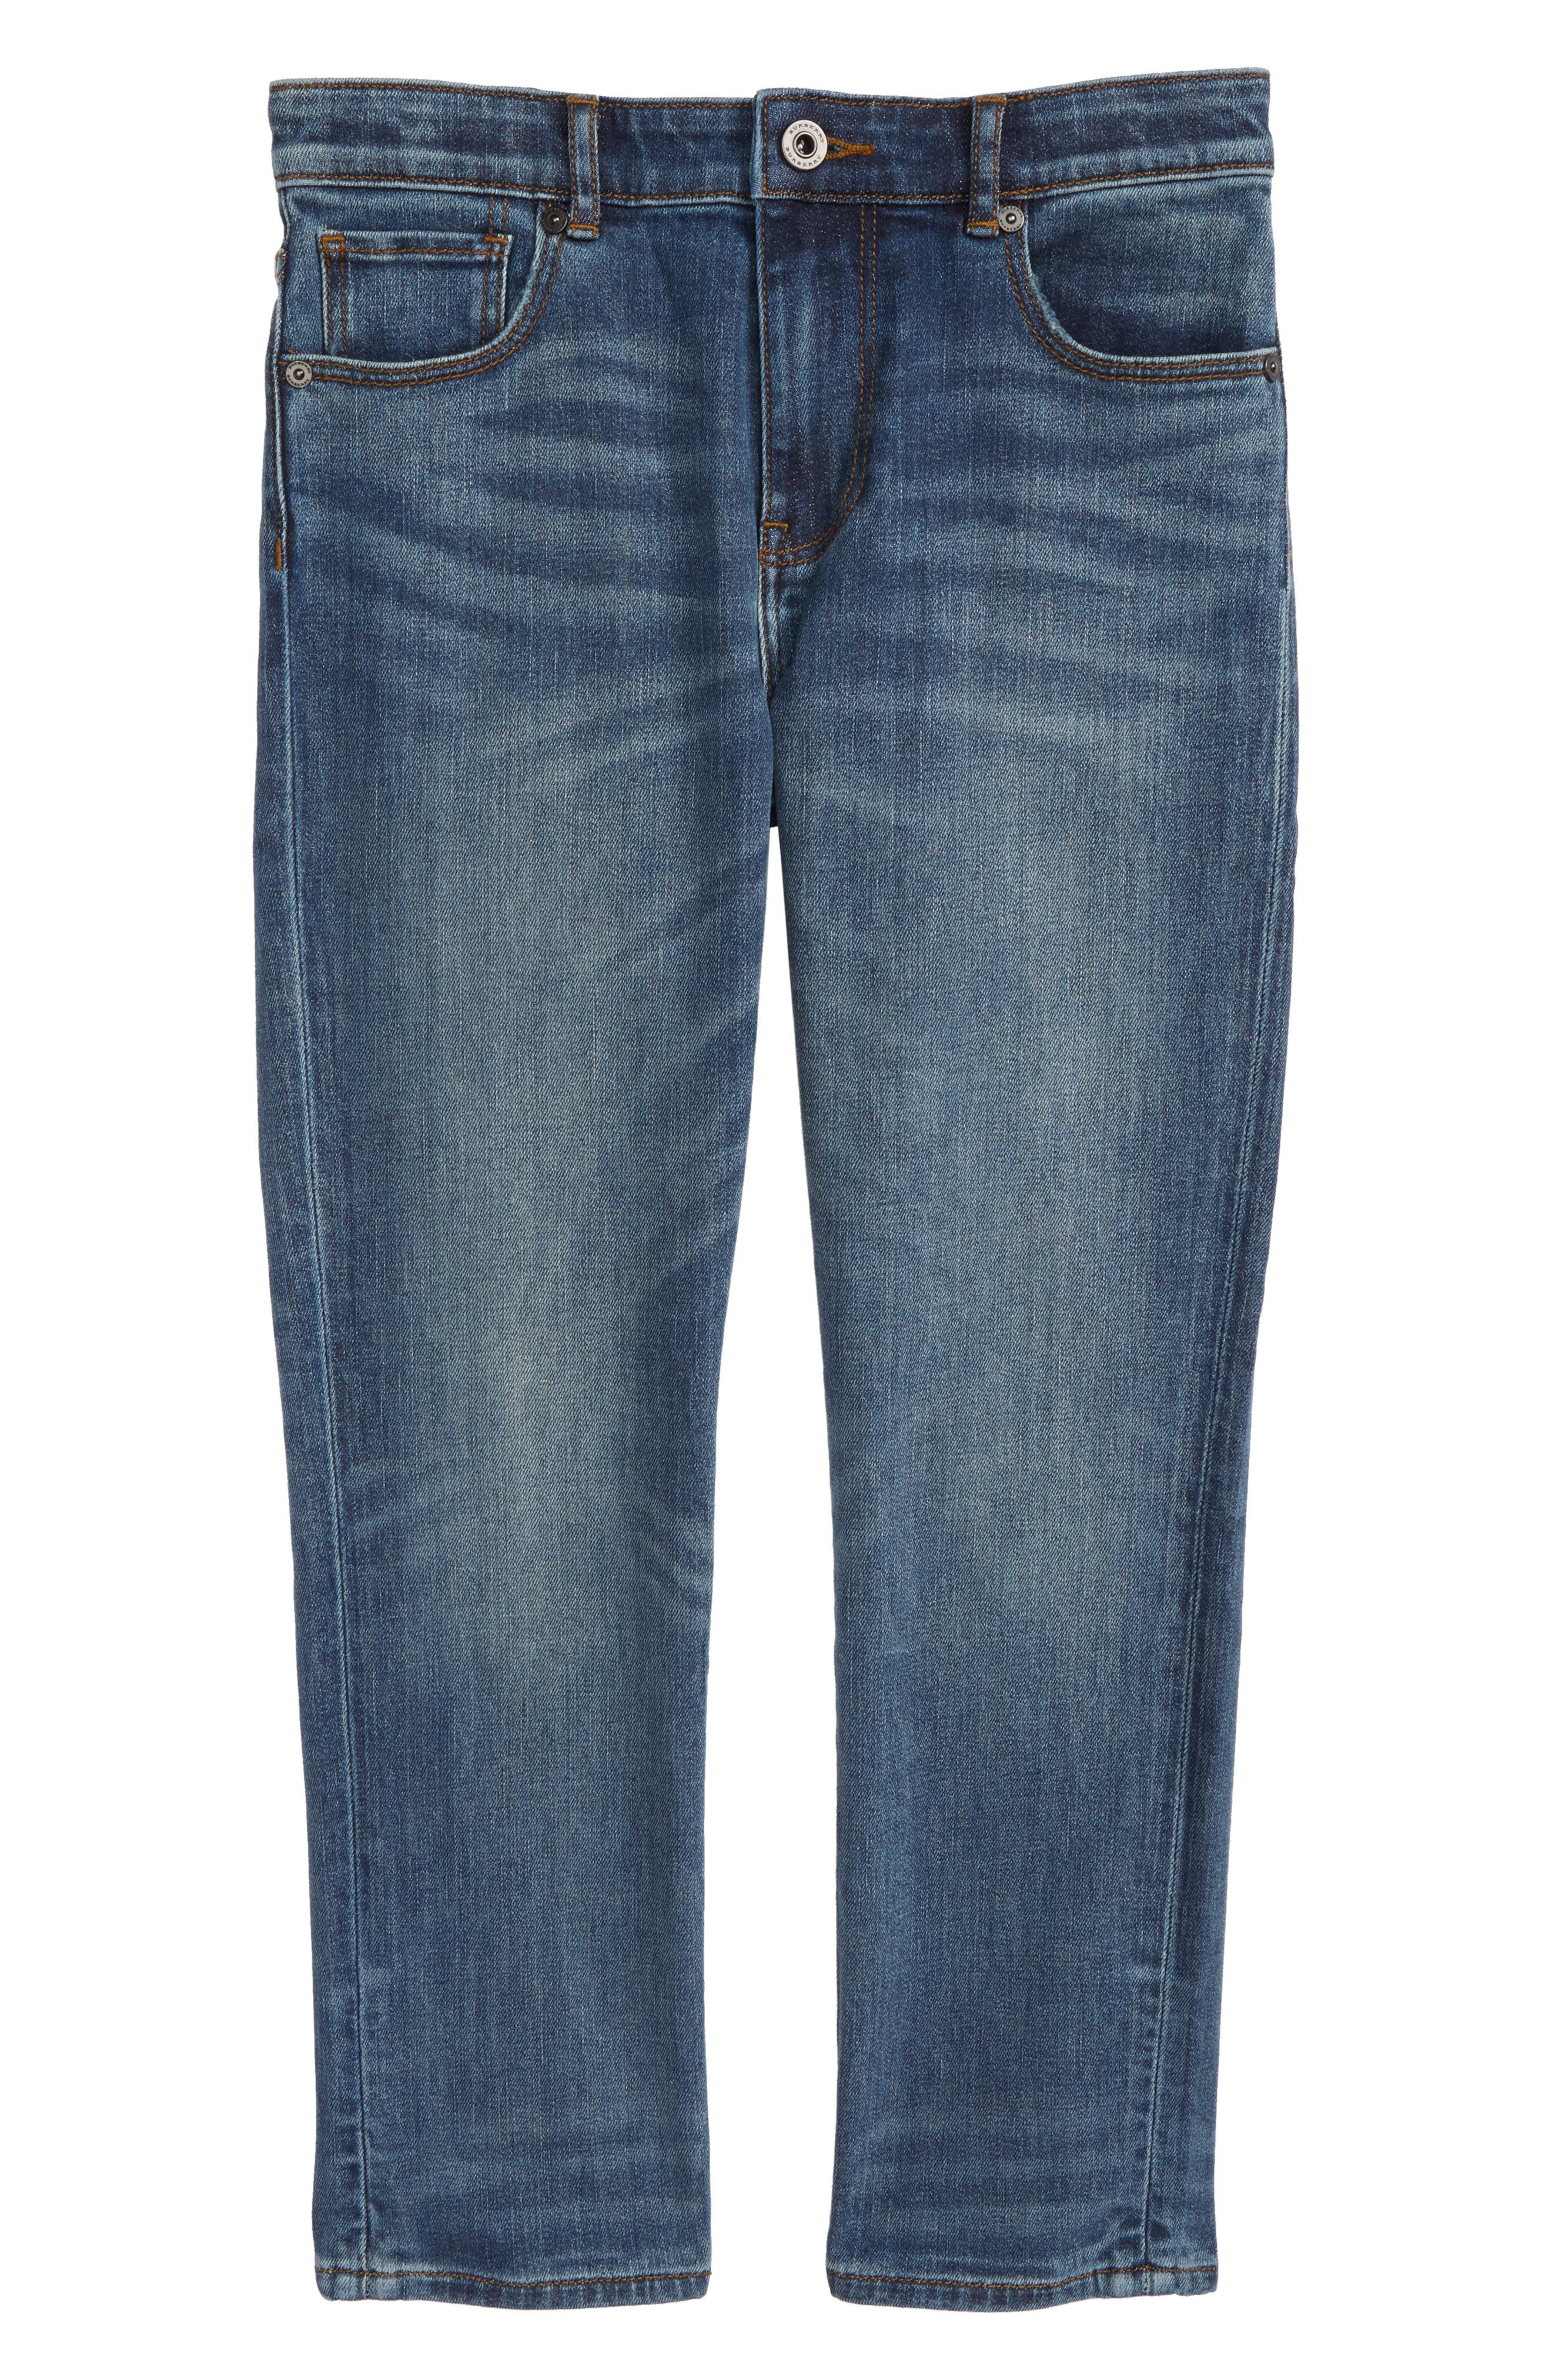 BURBERRY Relaxed Fit Jeans, Main, color, MEDIUM INDIGO